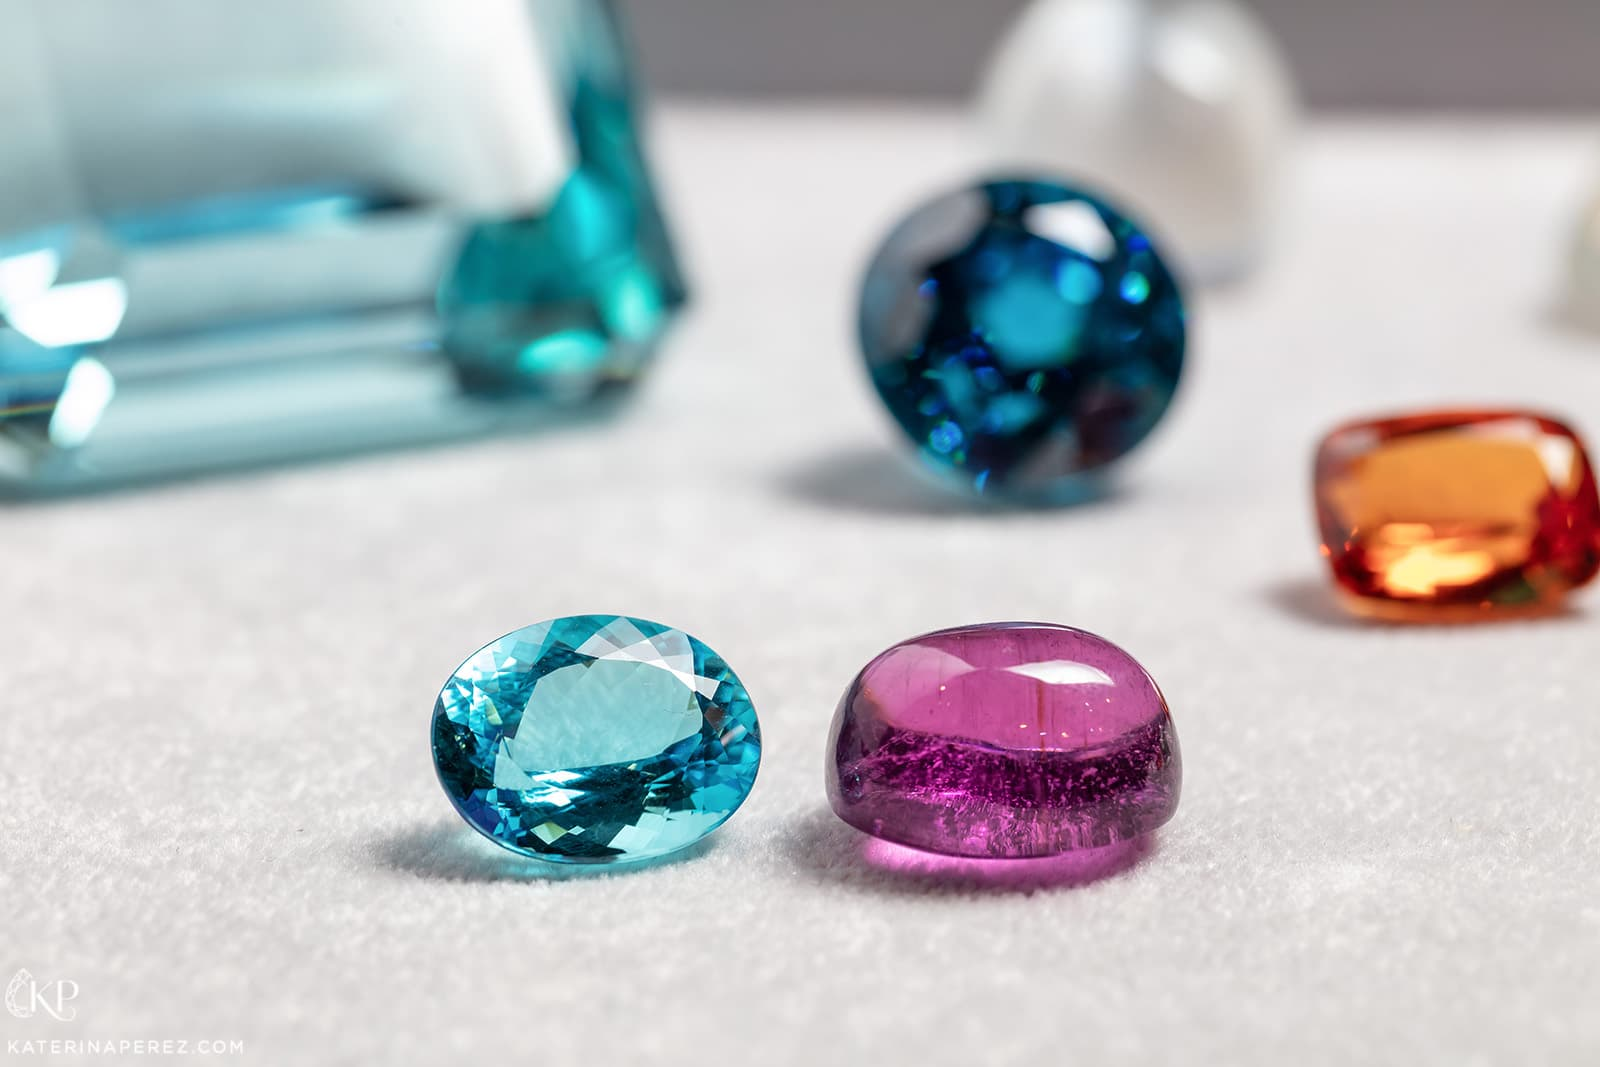 Two tourmalines from Mozambique, 16 cts and 24 cts, available at P&P Gems. Photo by Simon Martner